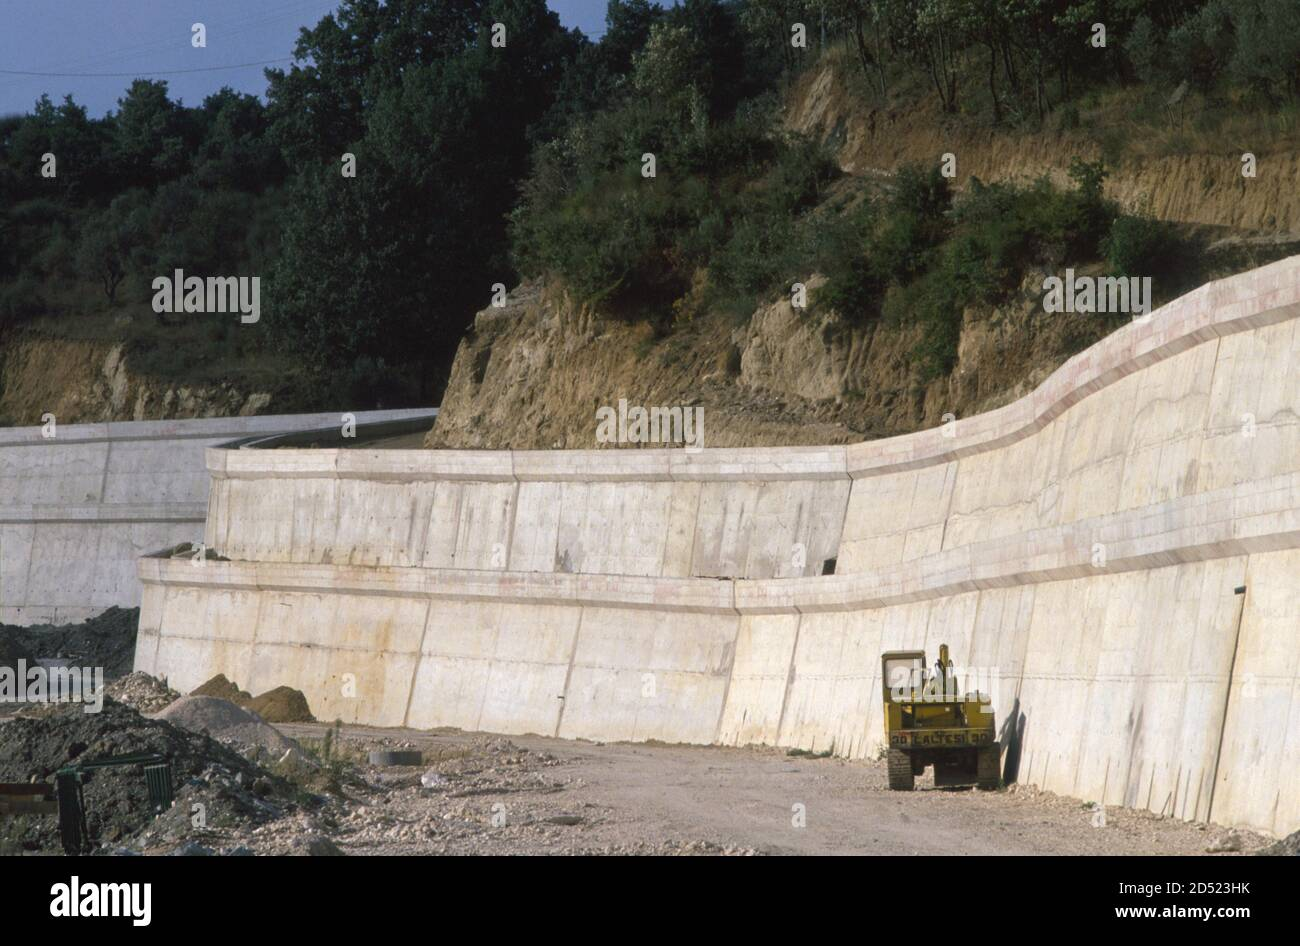 - September 1990, Irpinia reconstruction after the earthquake of 1980, retaining wall in Laviano - settembre 1990, ricostruzione in Irpinia dopo il terremoto del 1980, muro di contenimento a Laviano Stock Photo